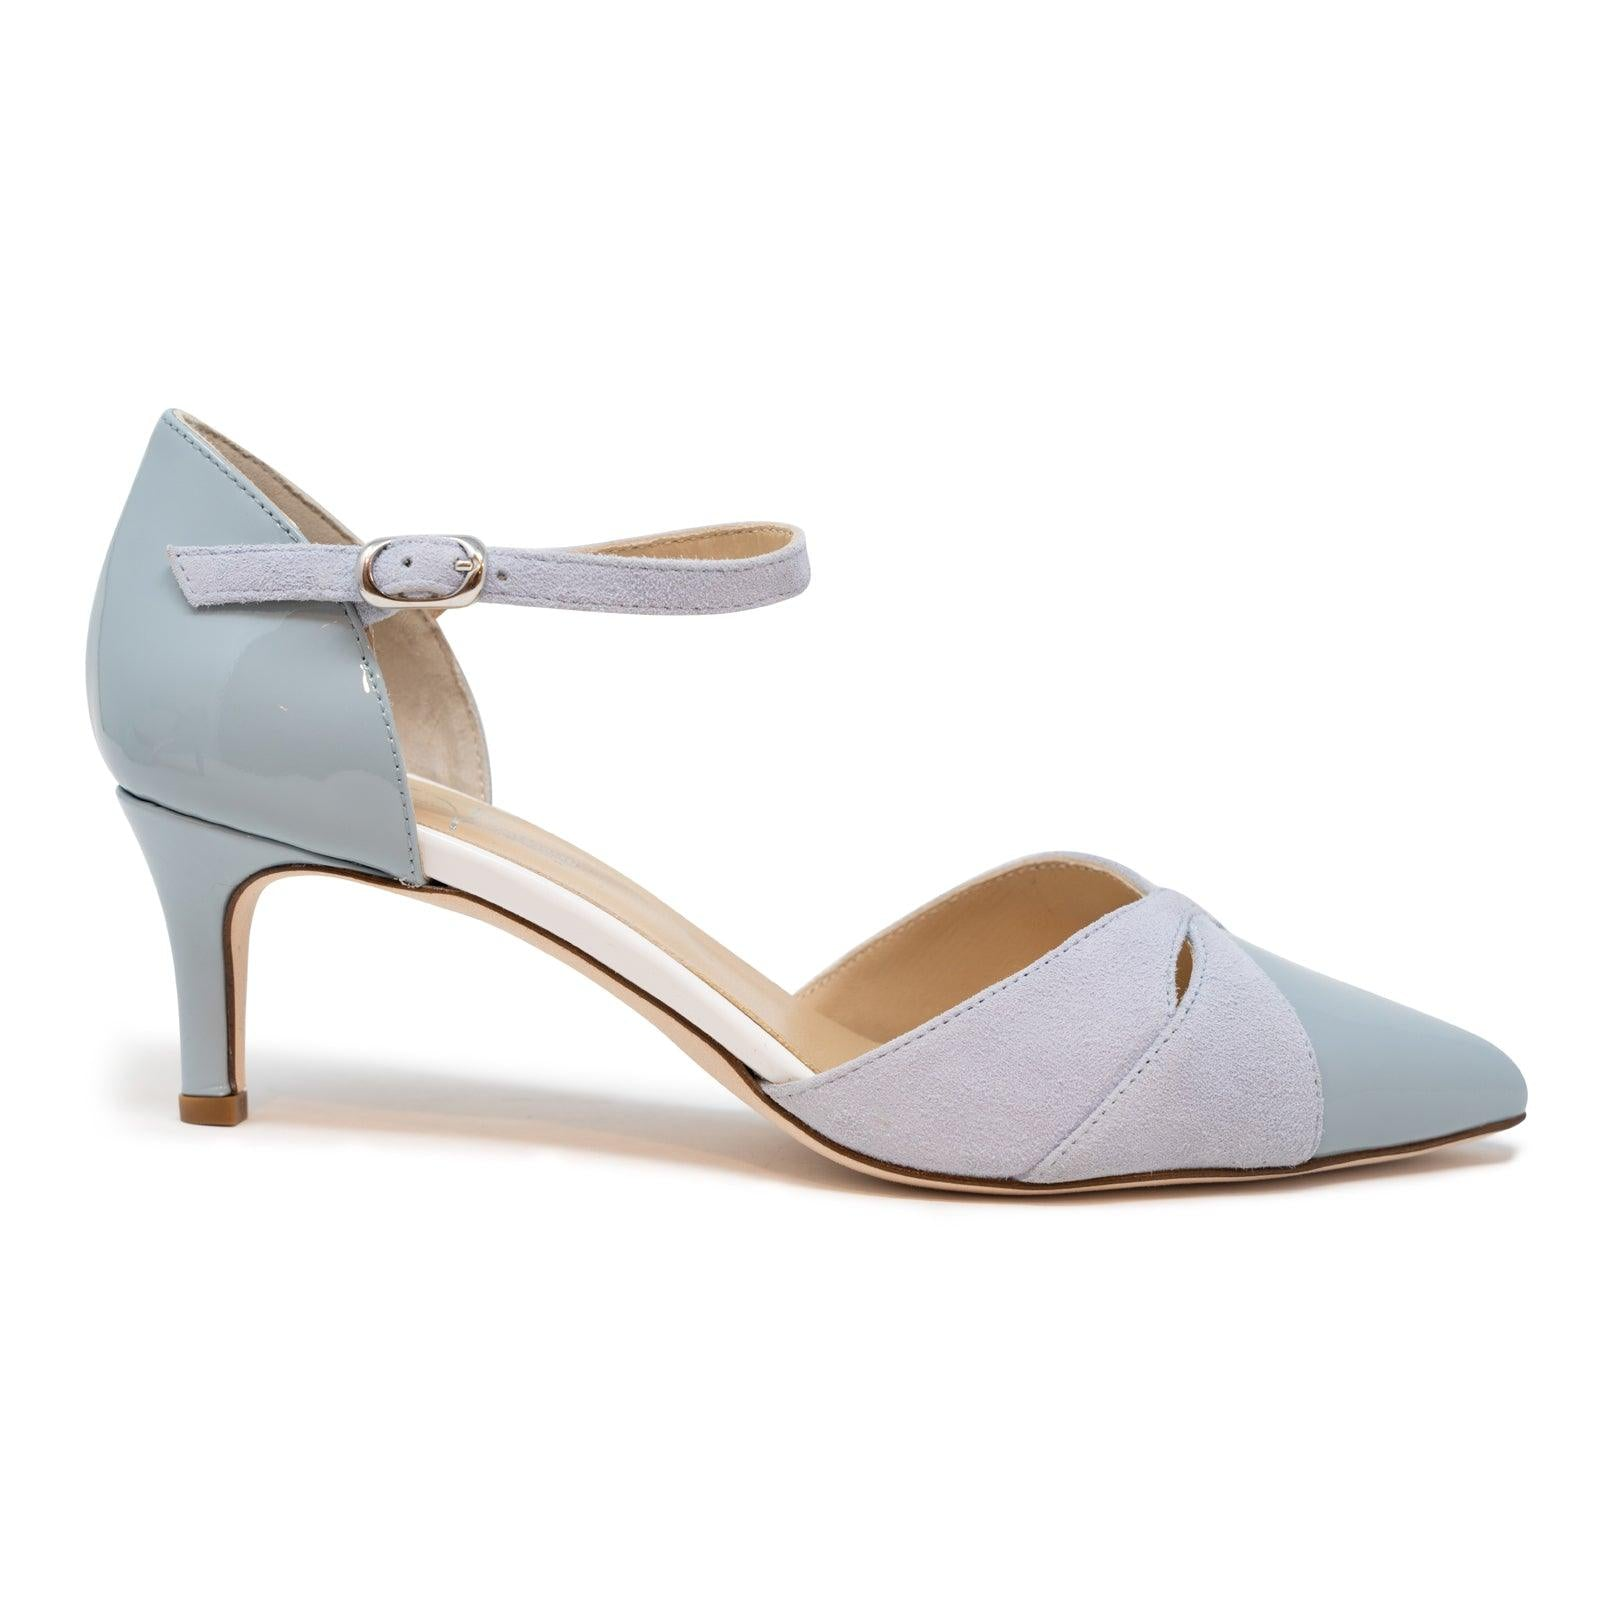 Women's Suede Leather Pumps in Foschiaq